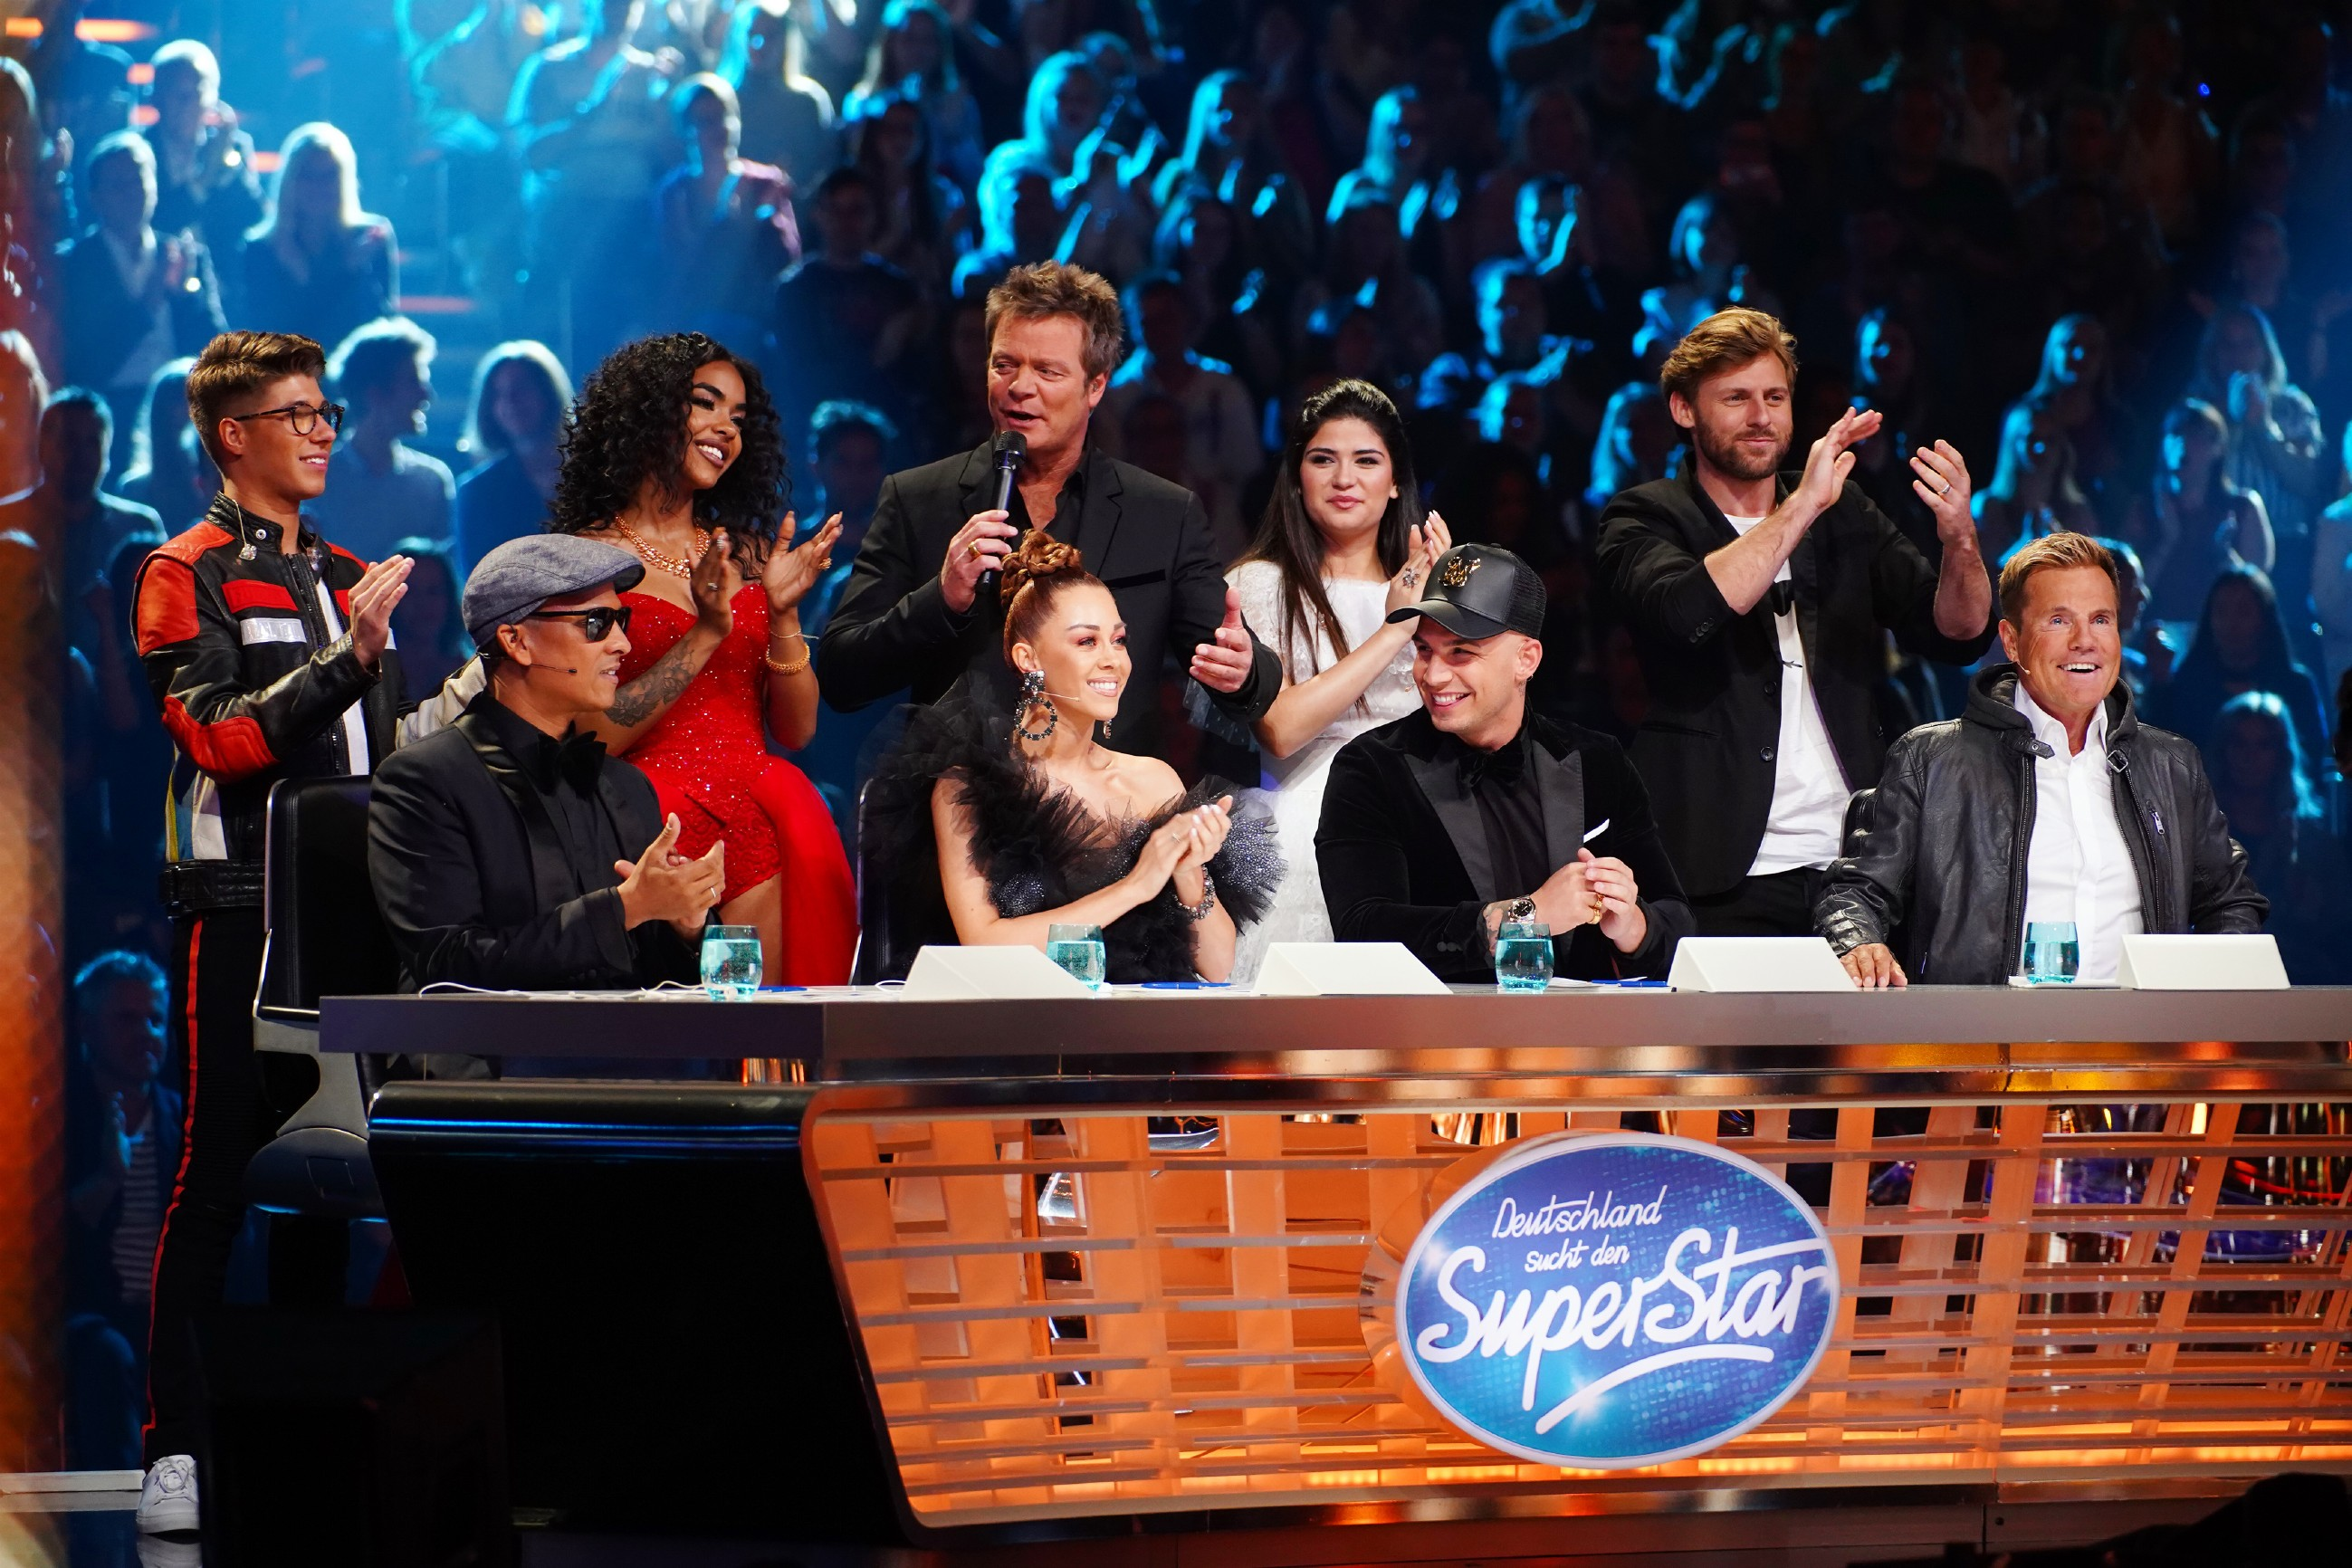 Finalsongs Dsds 2019